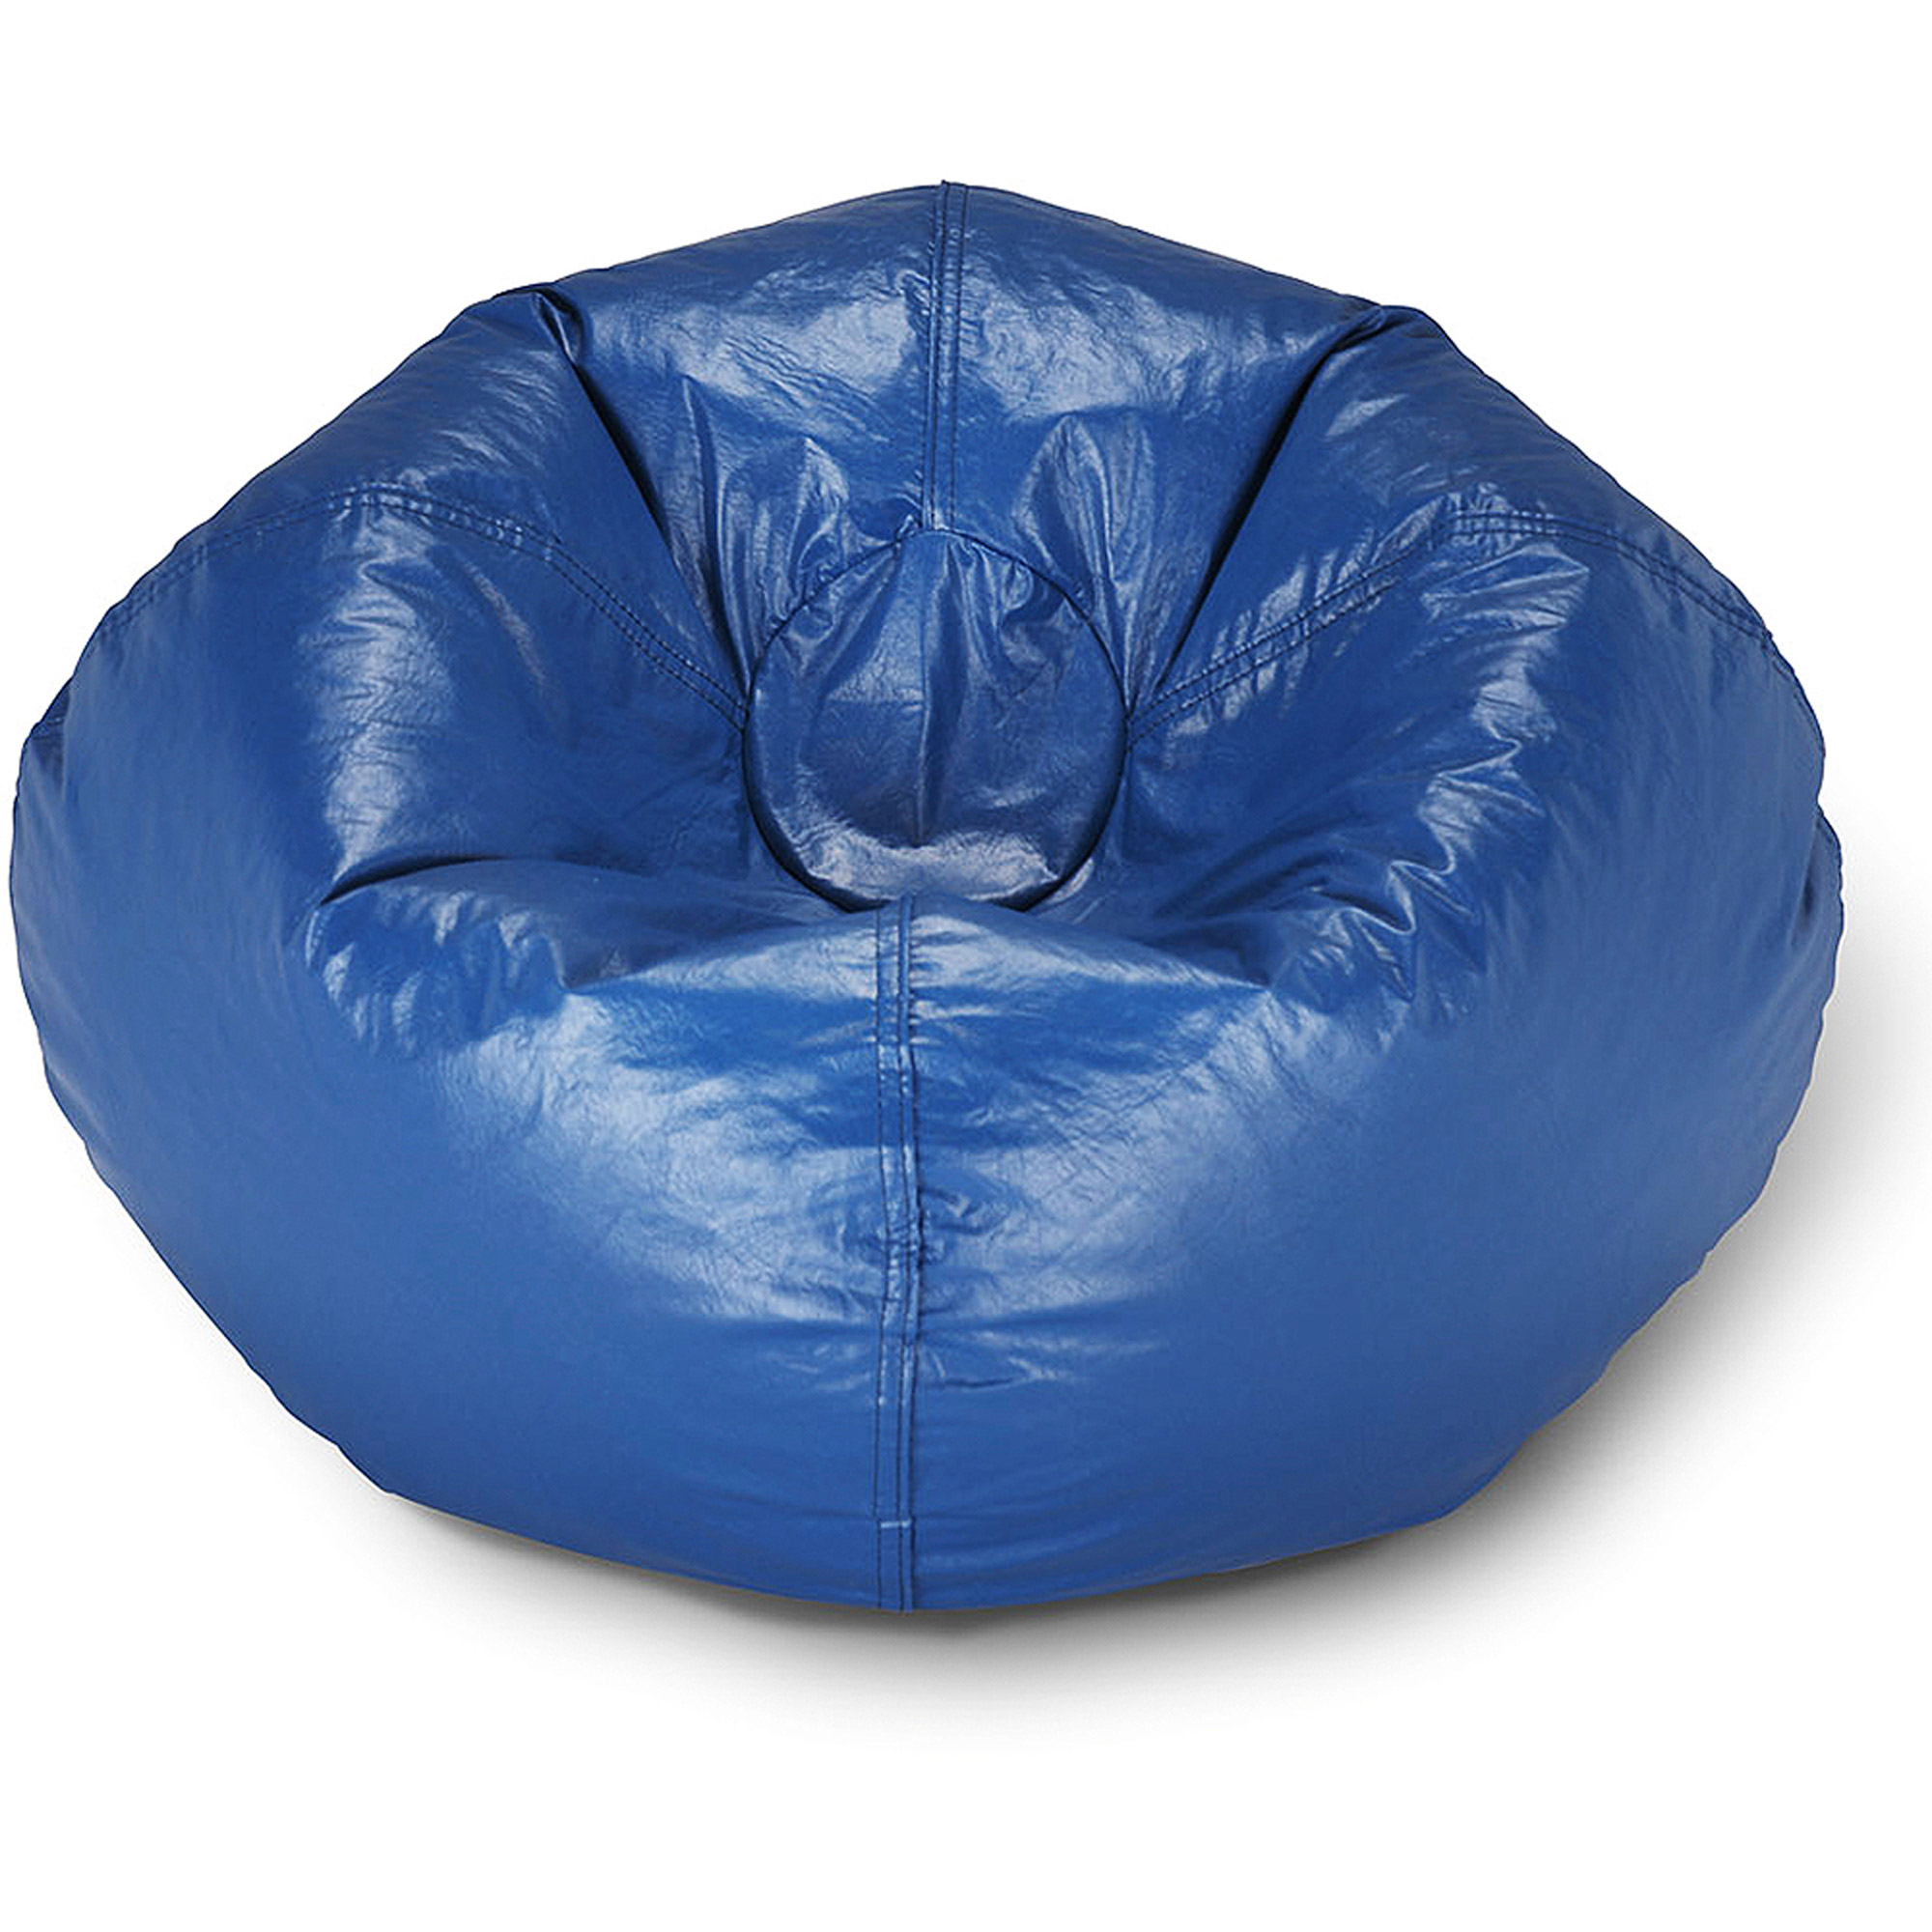 96 Round Vinyl Shiny Bean Bag Blue